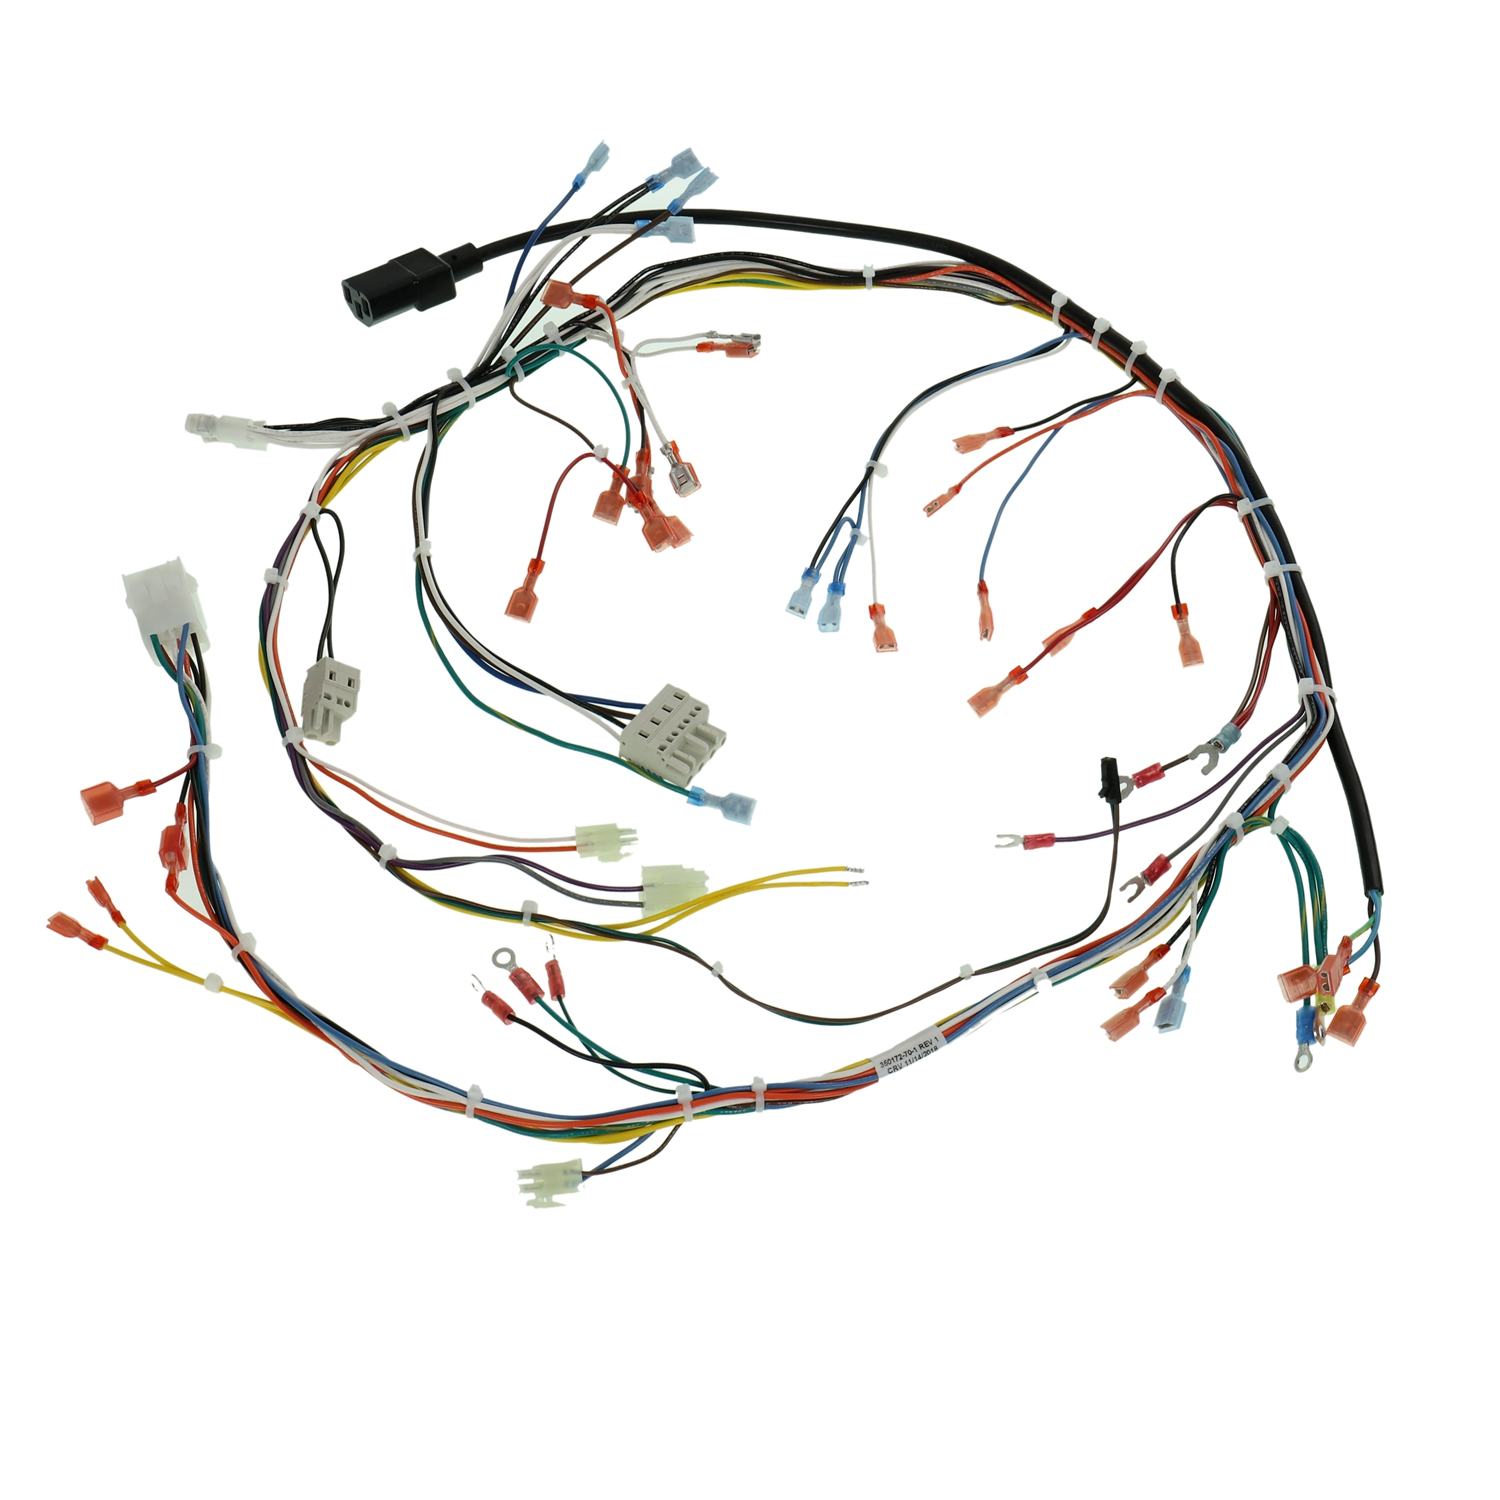 Wiring Harnesses  Products Wiring Harnesses